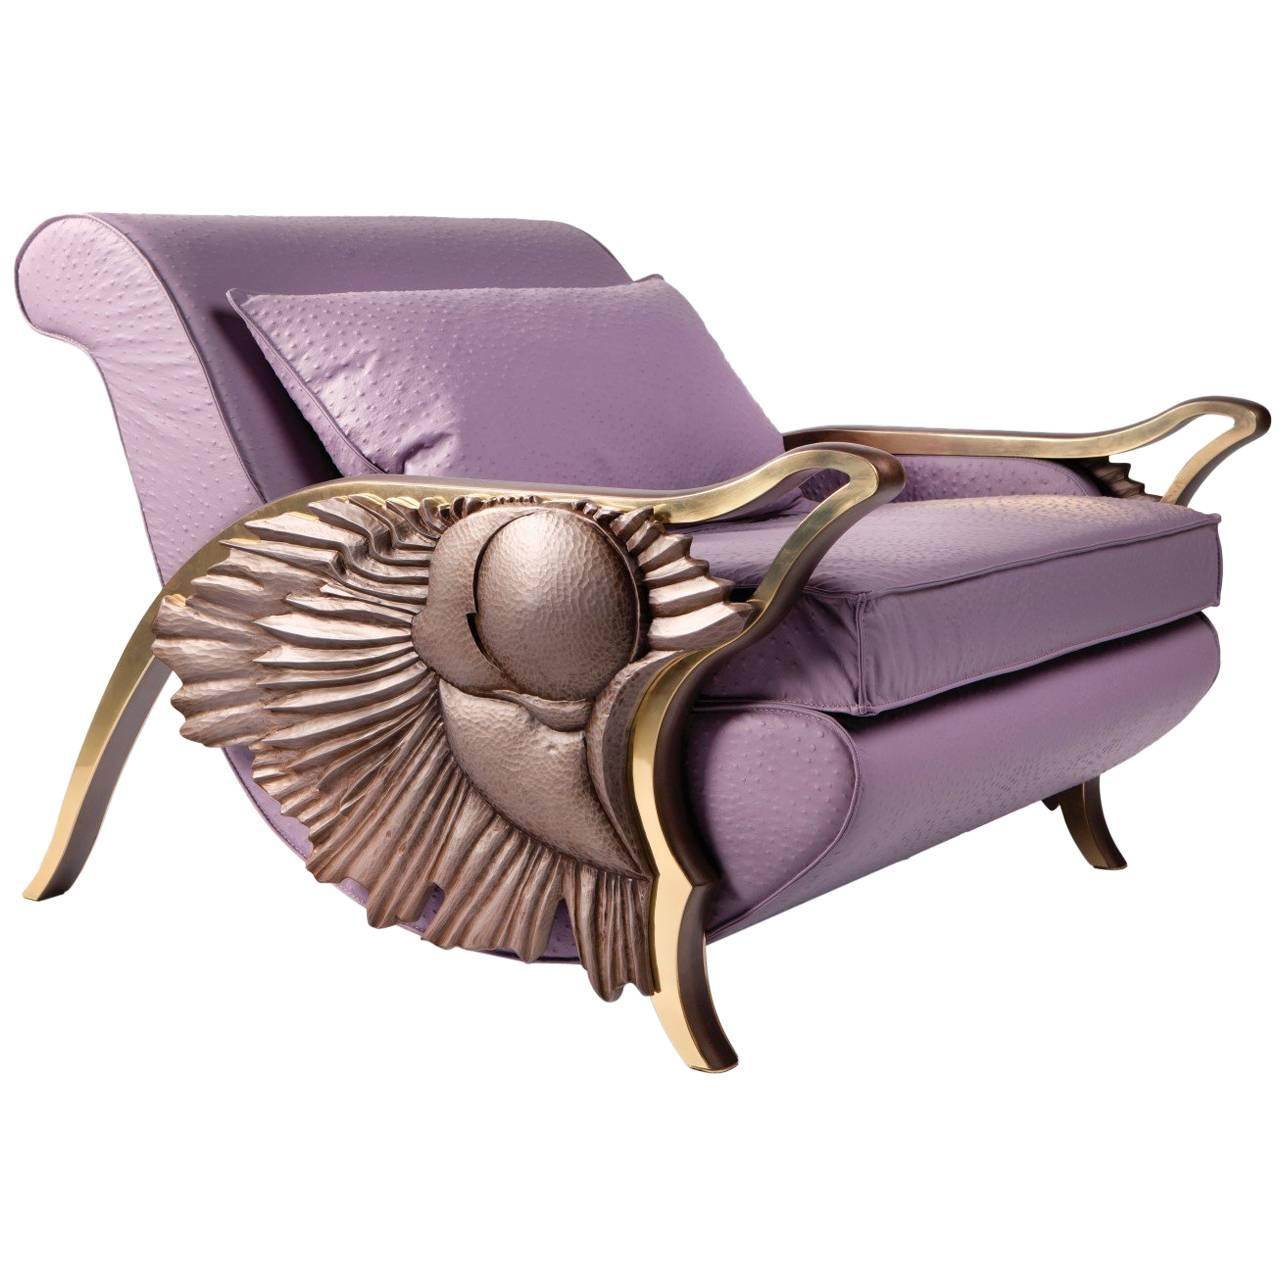 'Eternity' Limited Edition Lounge Armchair from Egli Design